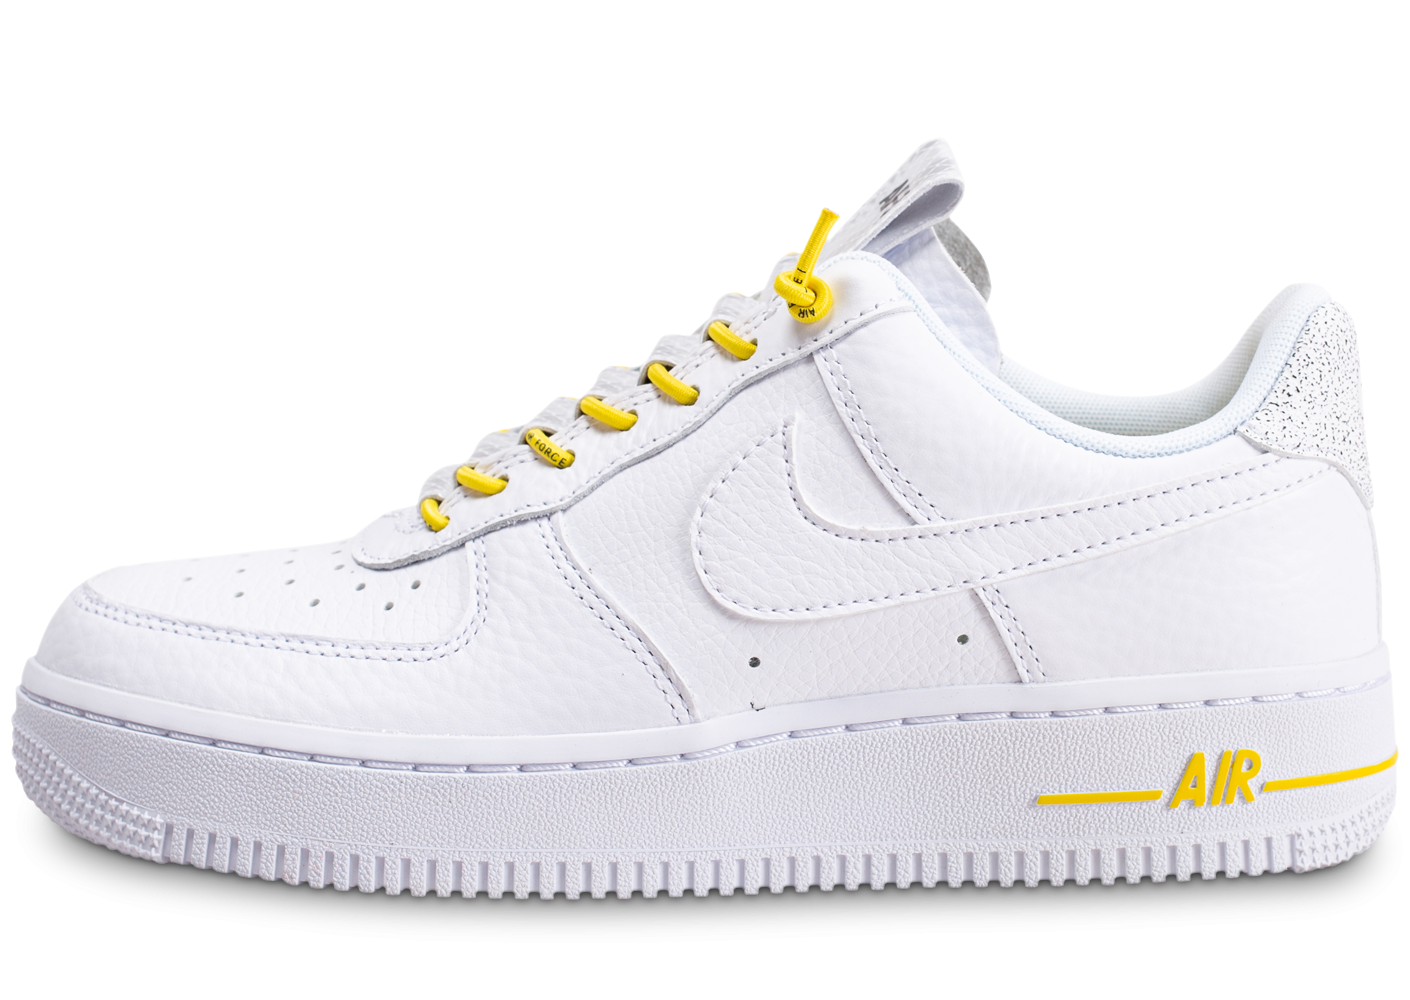 nike air force 1 07 low lux femme blanche